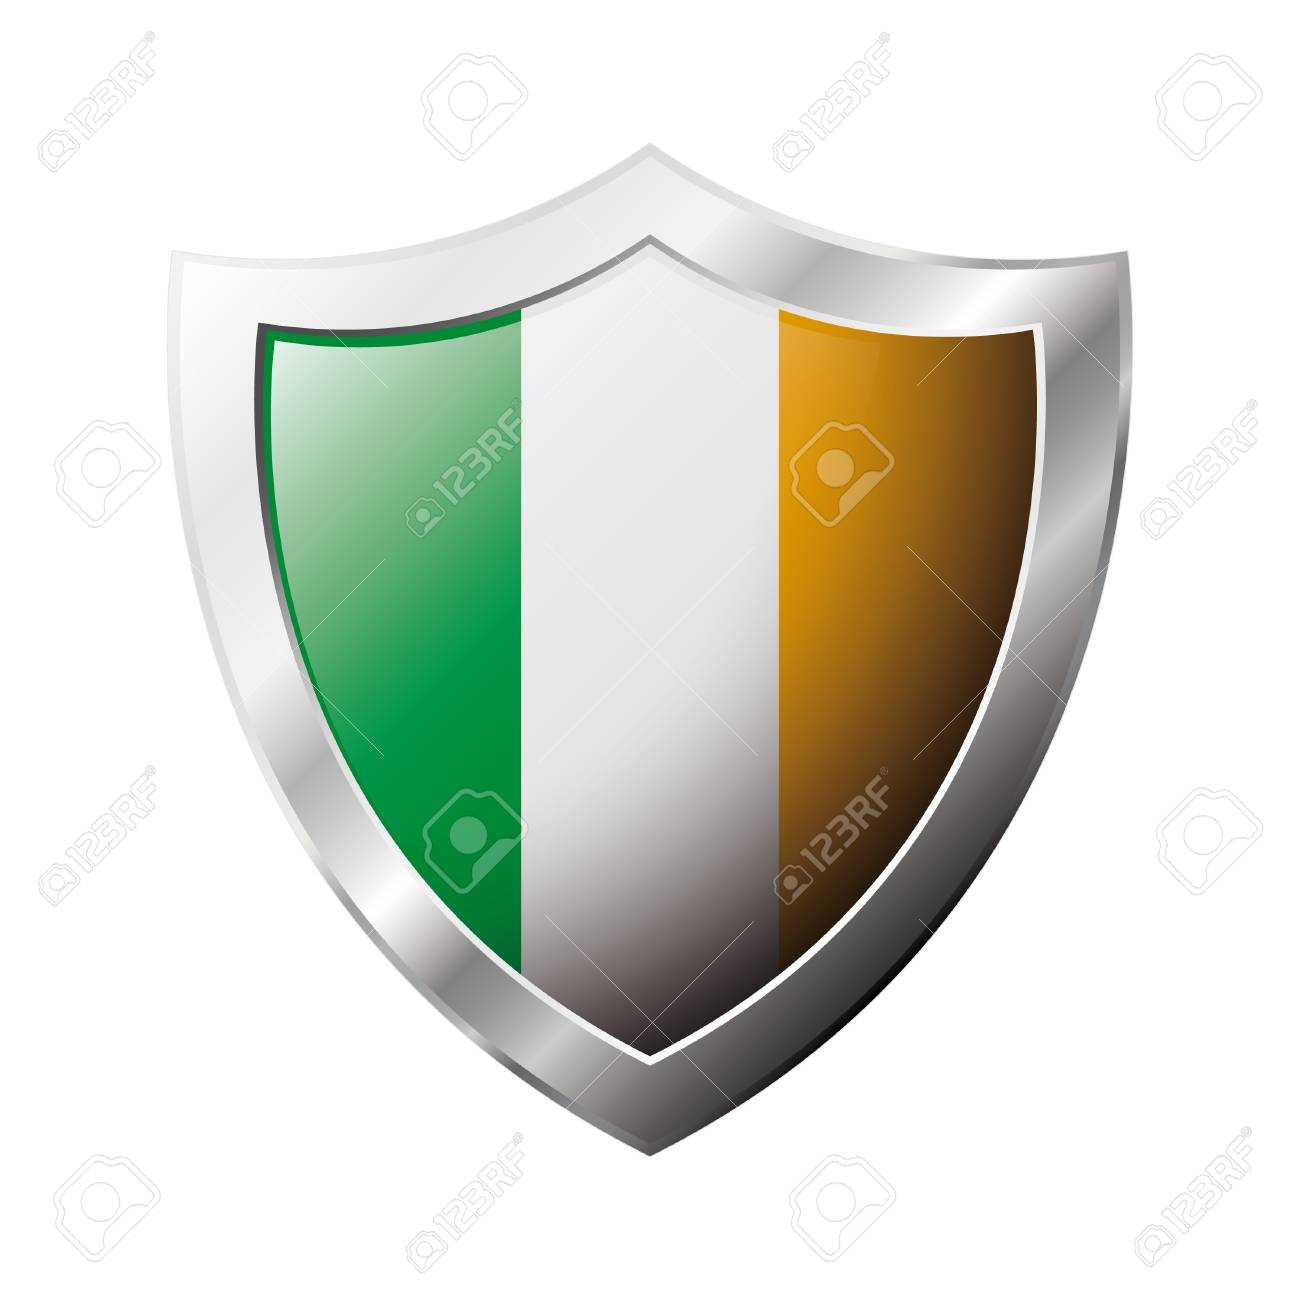 Ireland flag on metal shiny shield  illustration. Collection of flags on shield against white background. Abstract isolated object. Stock Illustration - 6941277